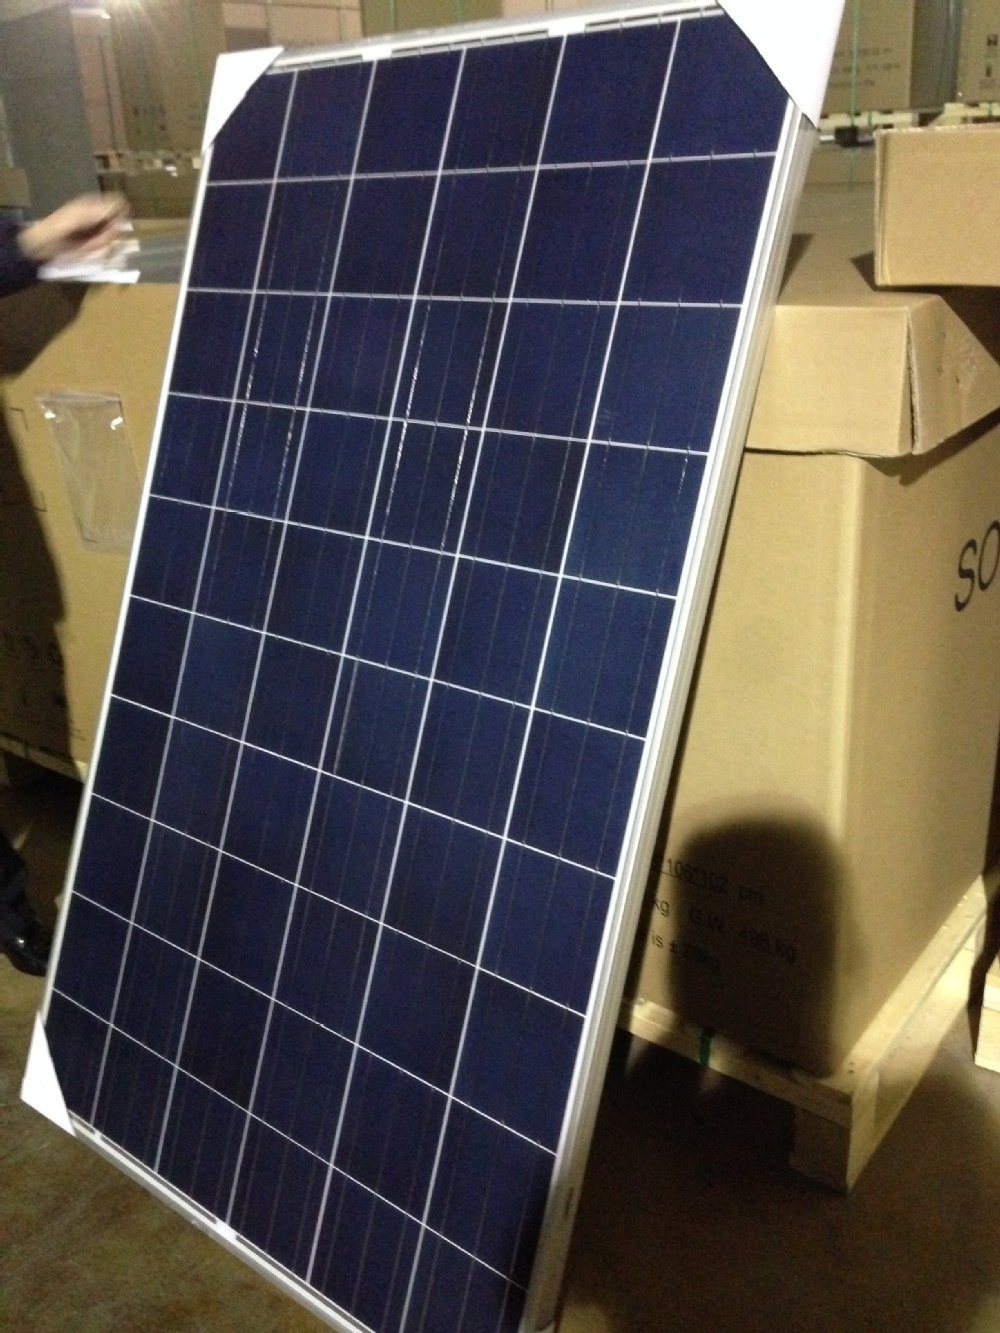 Yingli Jinko,Hanwha JA 2017 cheap price 255W-320W poly solar panel in stock for solar system solar home system poly solar panel